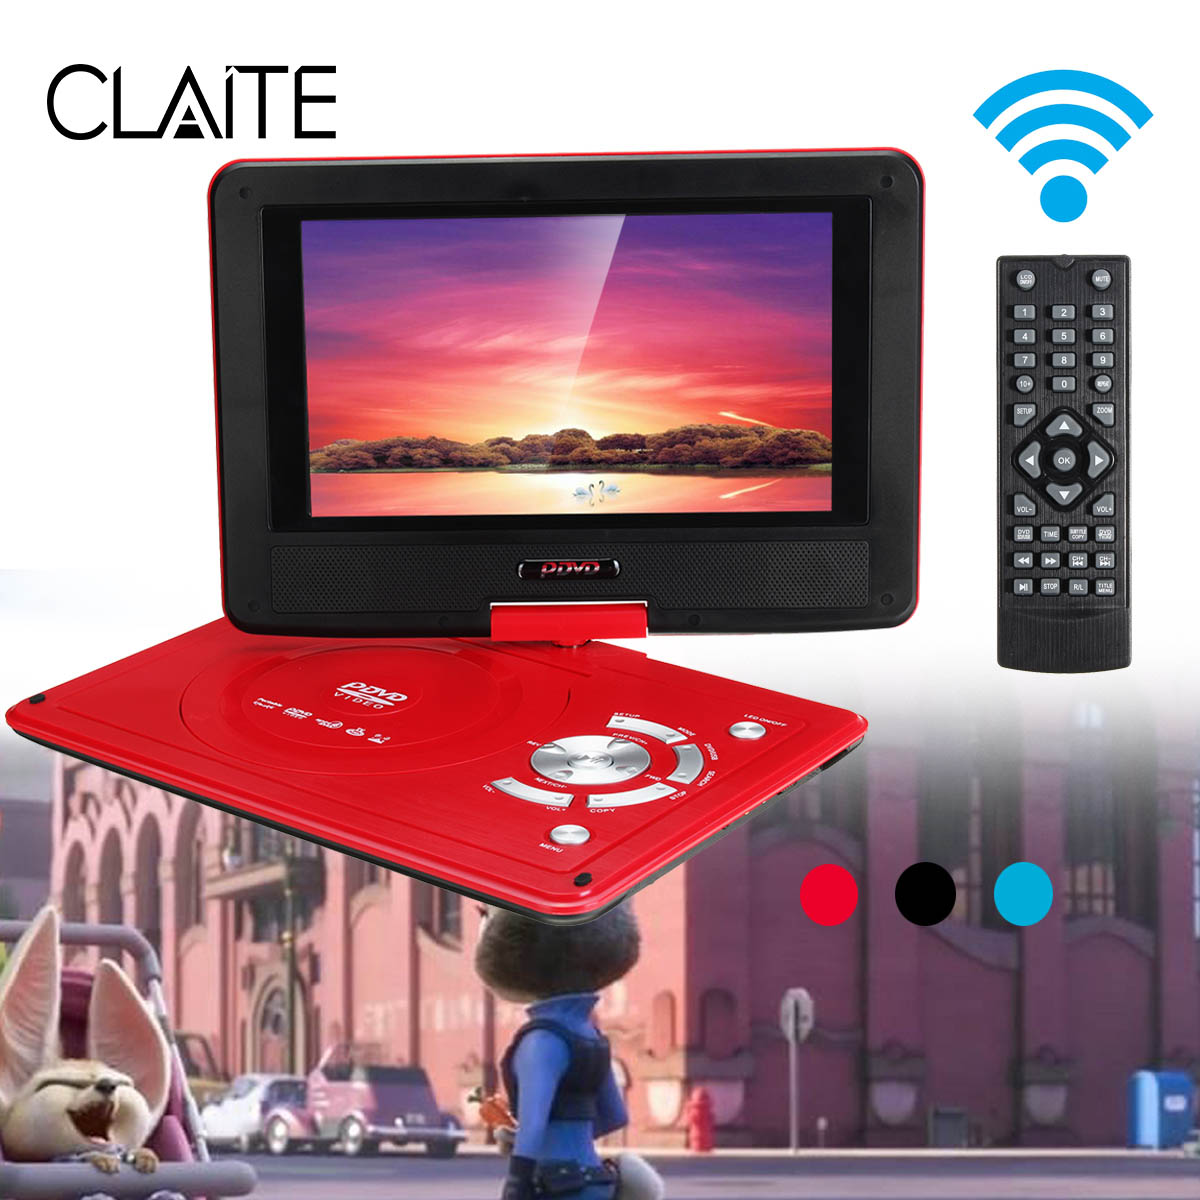 9.8 inch Portable DVD Player Digital Car Rechargeable Player With Game FM Radio TV AV Monitor Card Reader 270 Degree Screen 2018dvd player game player blu ray player portable rotatable 270 degree lcd gamepad 12v audio